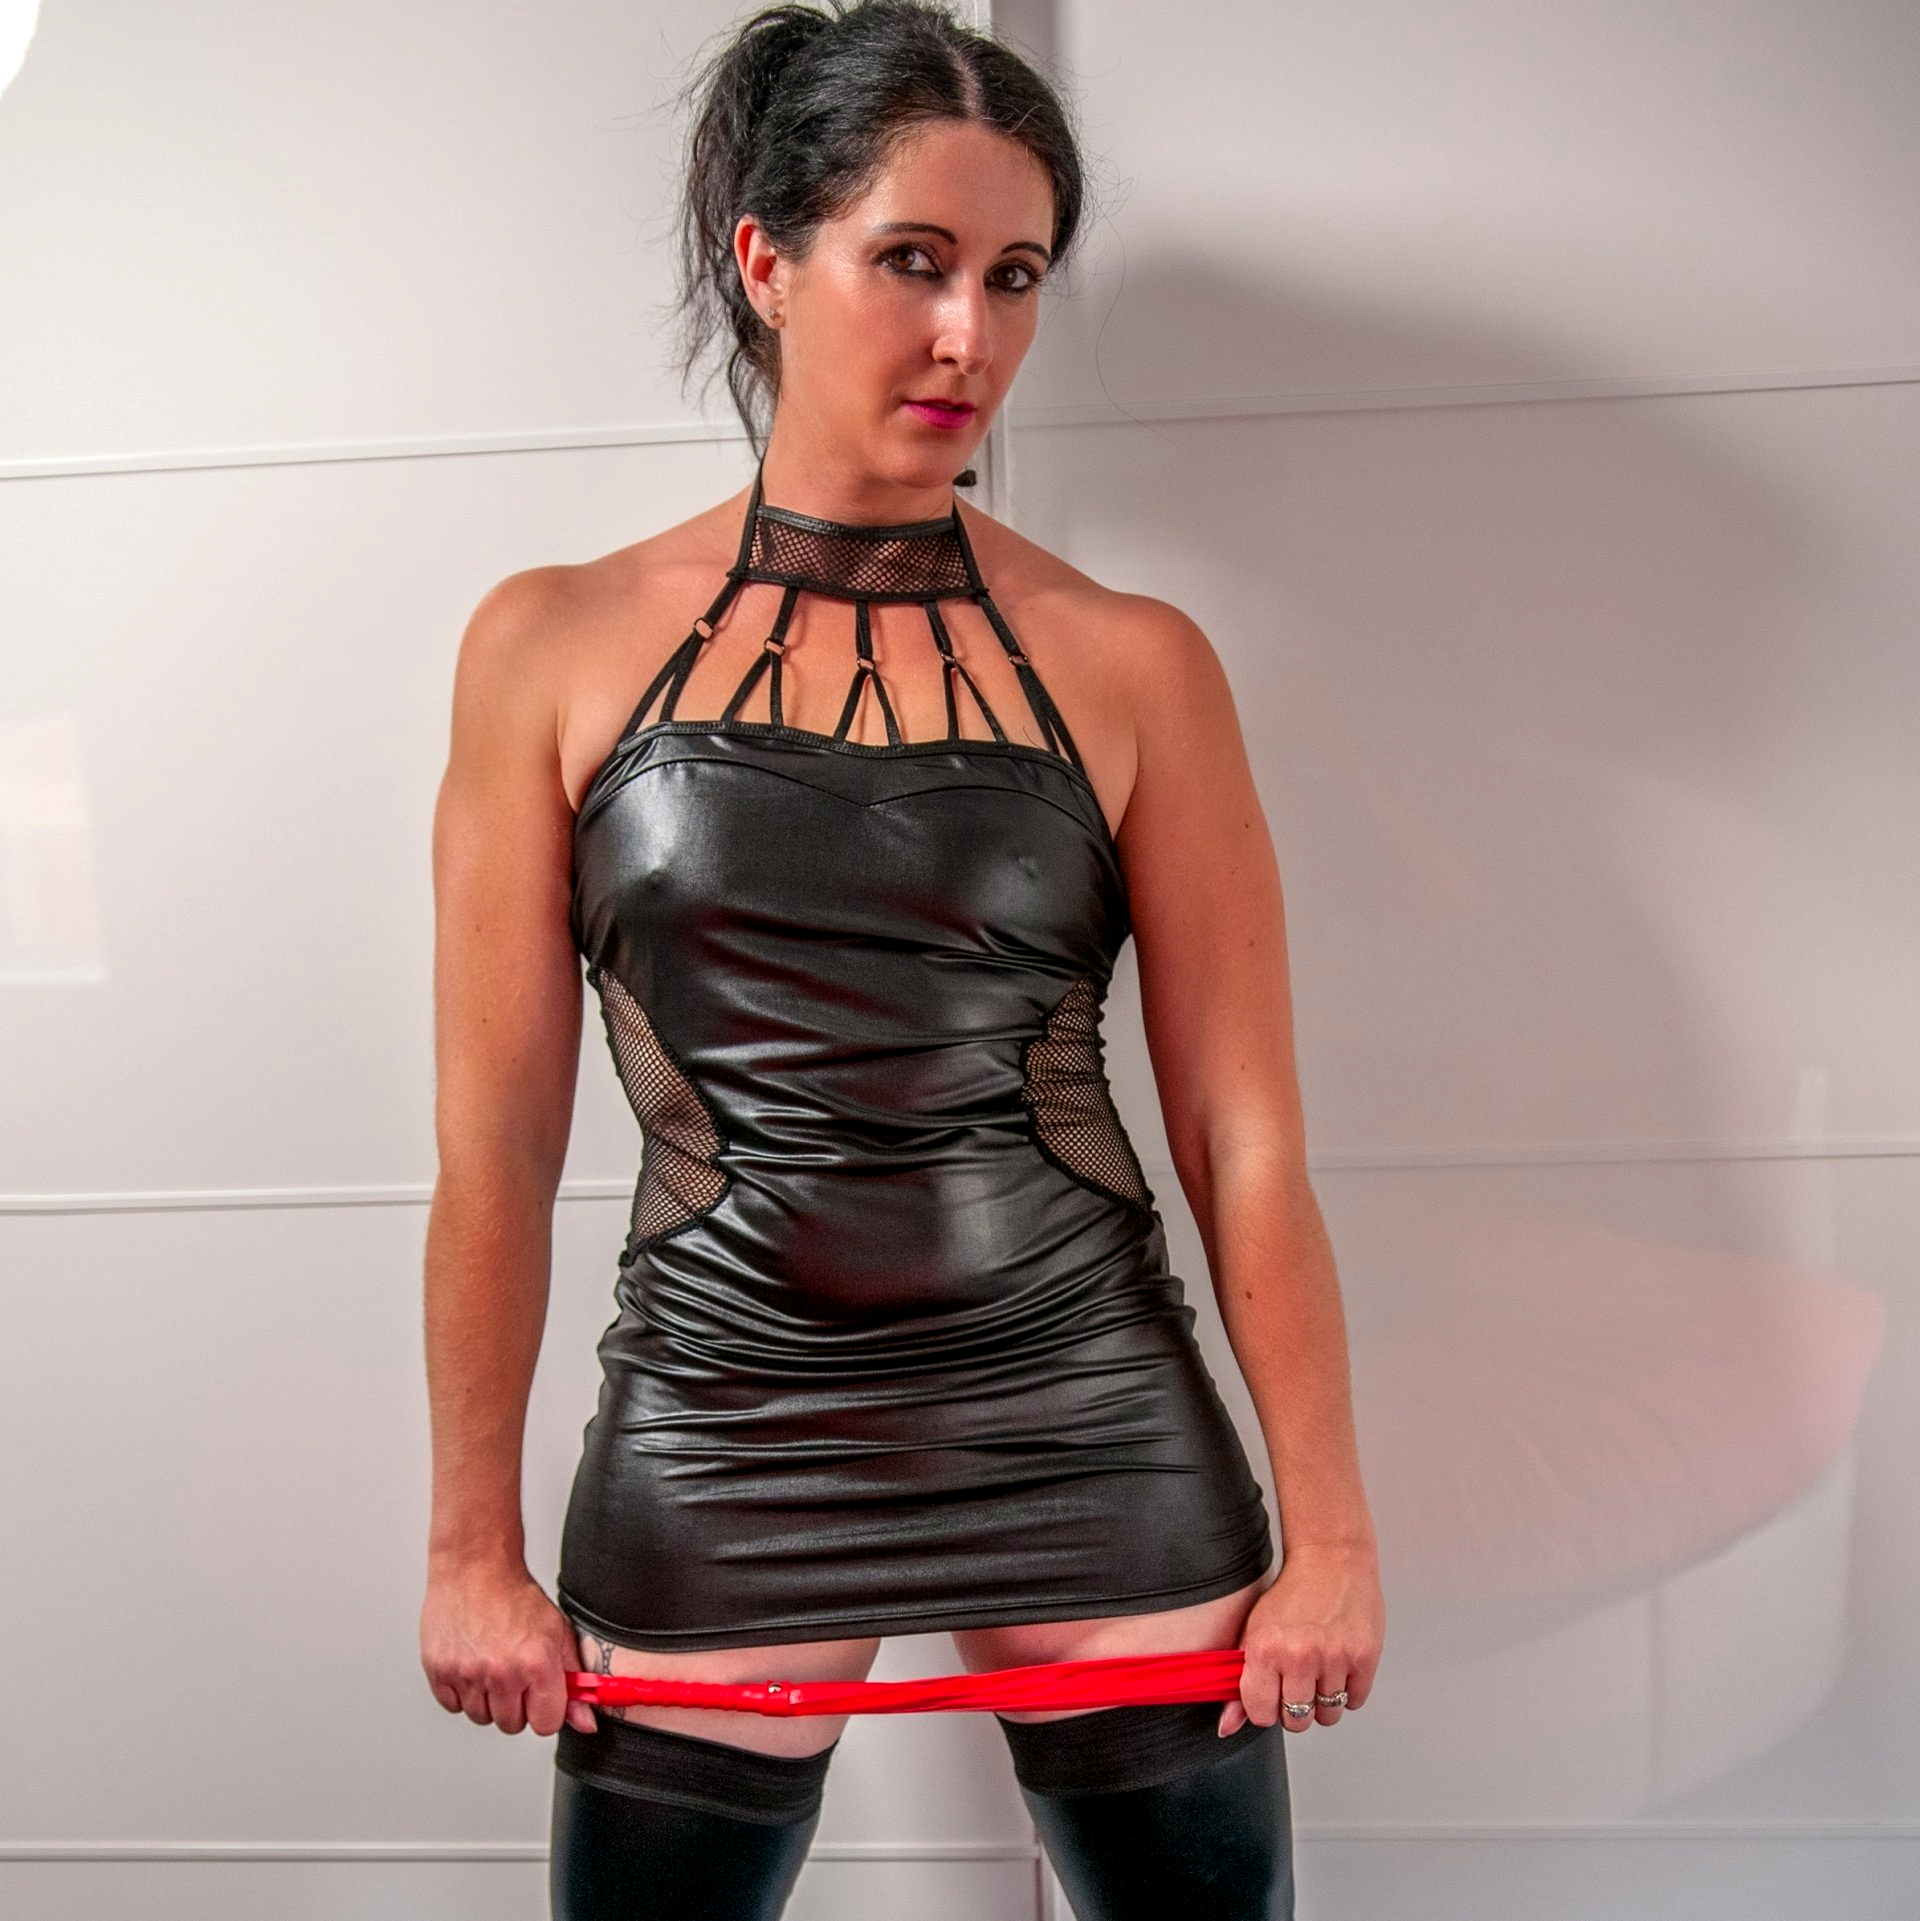 dominatrix-in-her-free-time